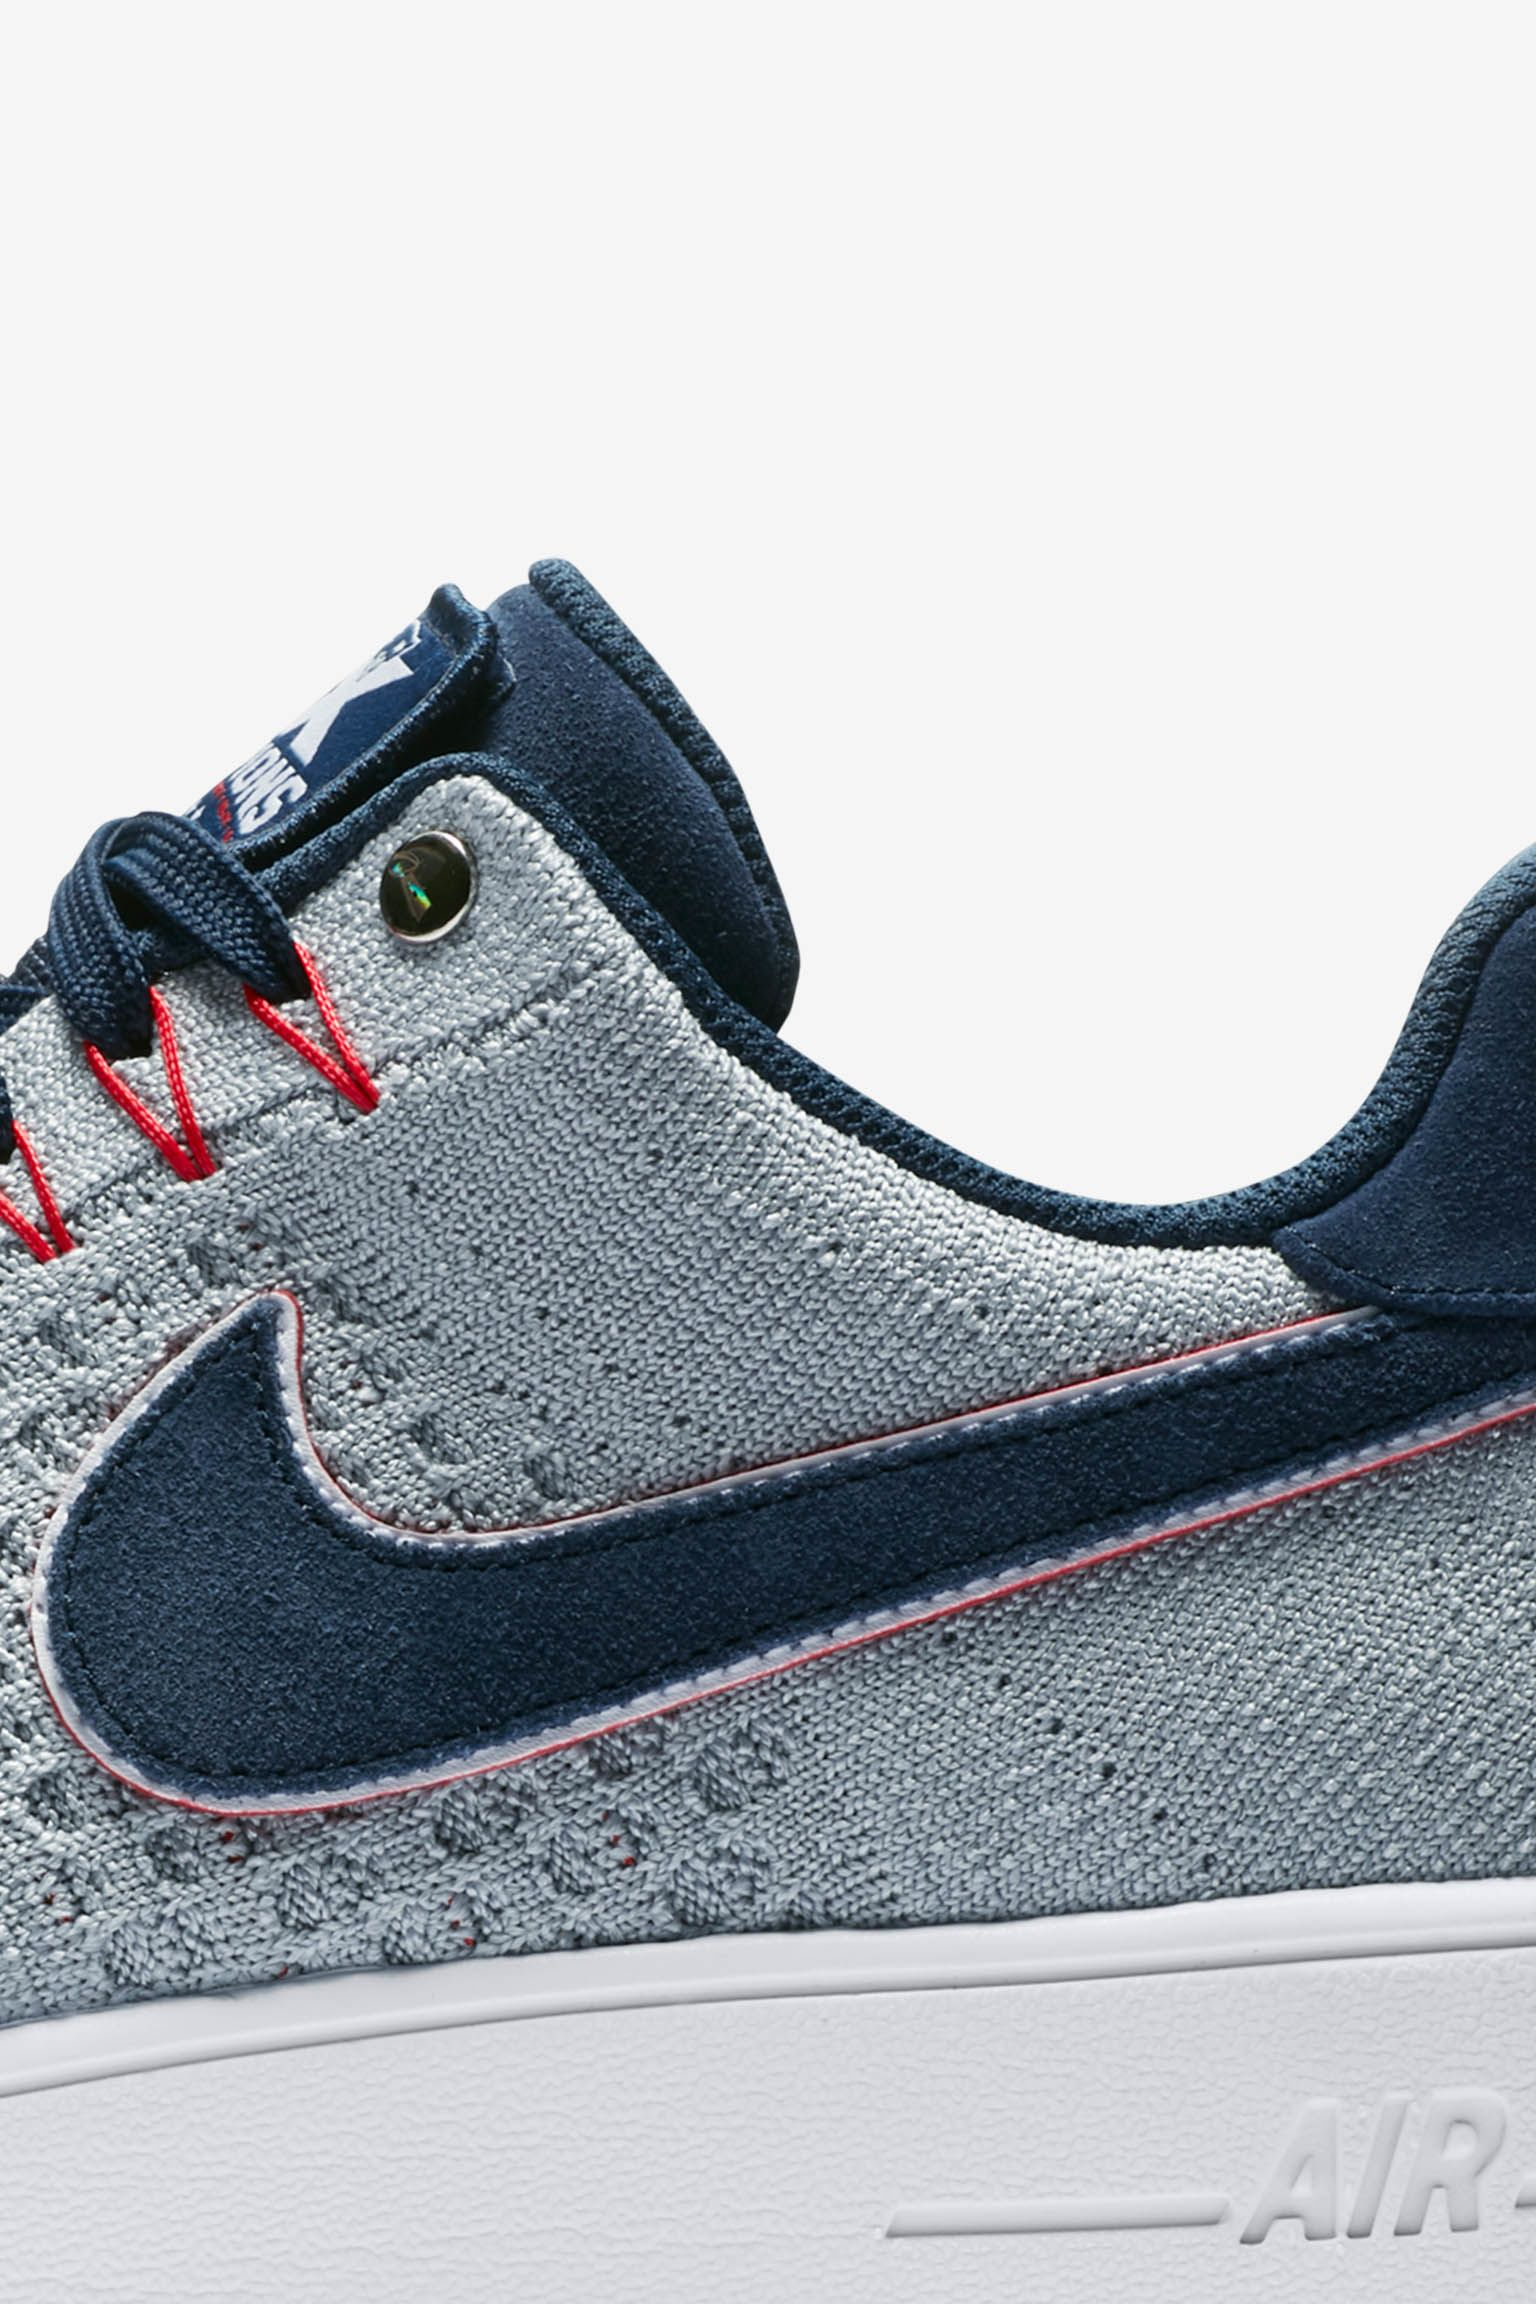 Nike Air Force 1 Ultra Flyknit Low 'RKK' Release Date